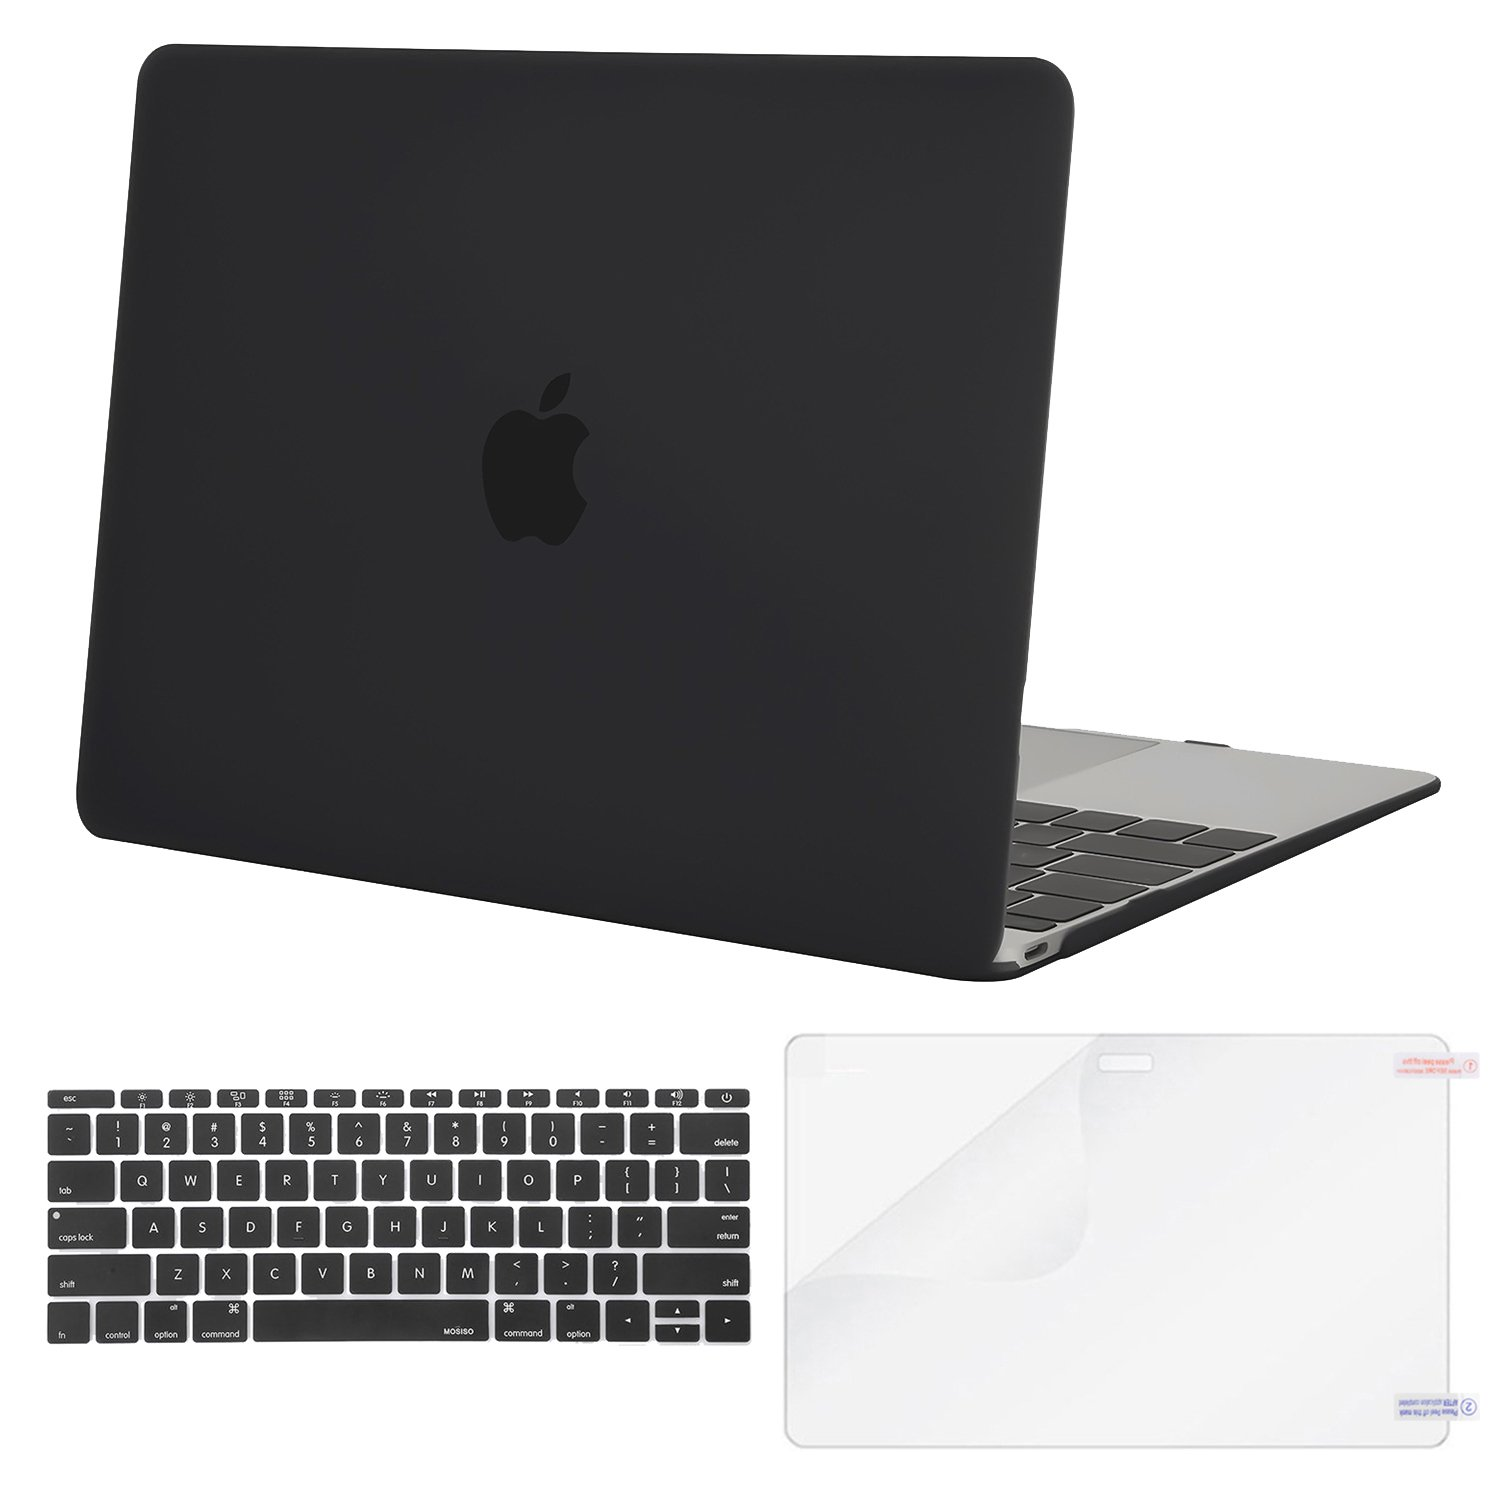 MOSISO Plastic Hard Shell Case & Keyboard Cover & Screen Protector Compatible MacBook 12 Inch Retina Display A1534 (Newest Version 2017/2016/2015), Black